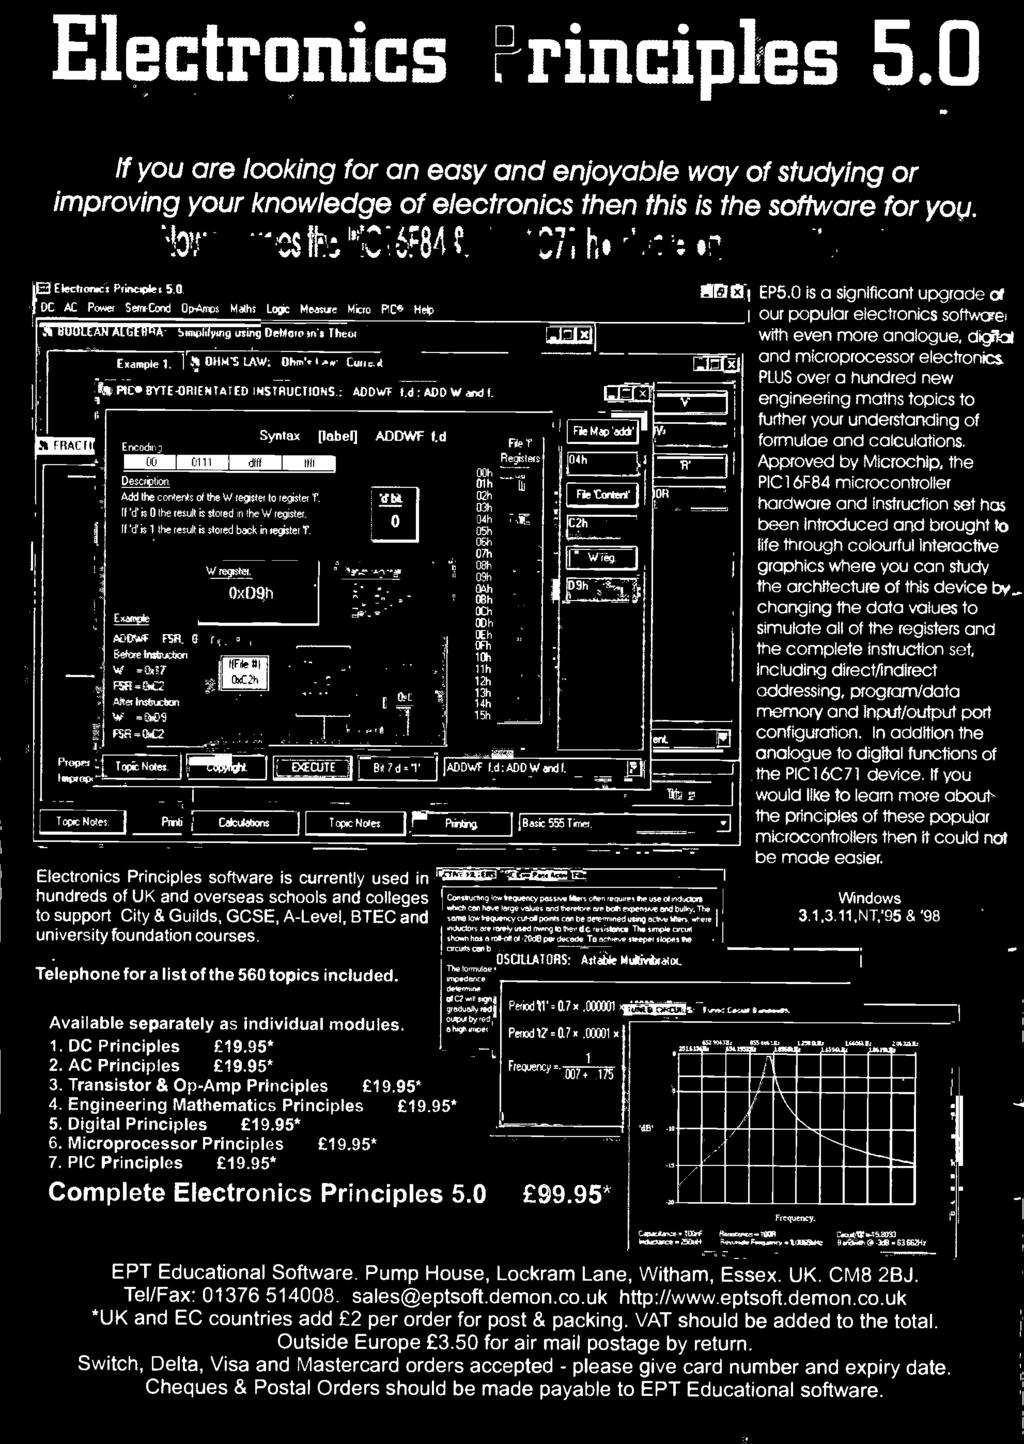 T E Airwaves Data O Electronics Plus Ionising Radiation And Led Using 555 Http Www Circuitdiagram Org Fading Pulsing F Principles Software Is Currently Used In Hundreds Of Uk Overseas